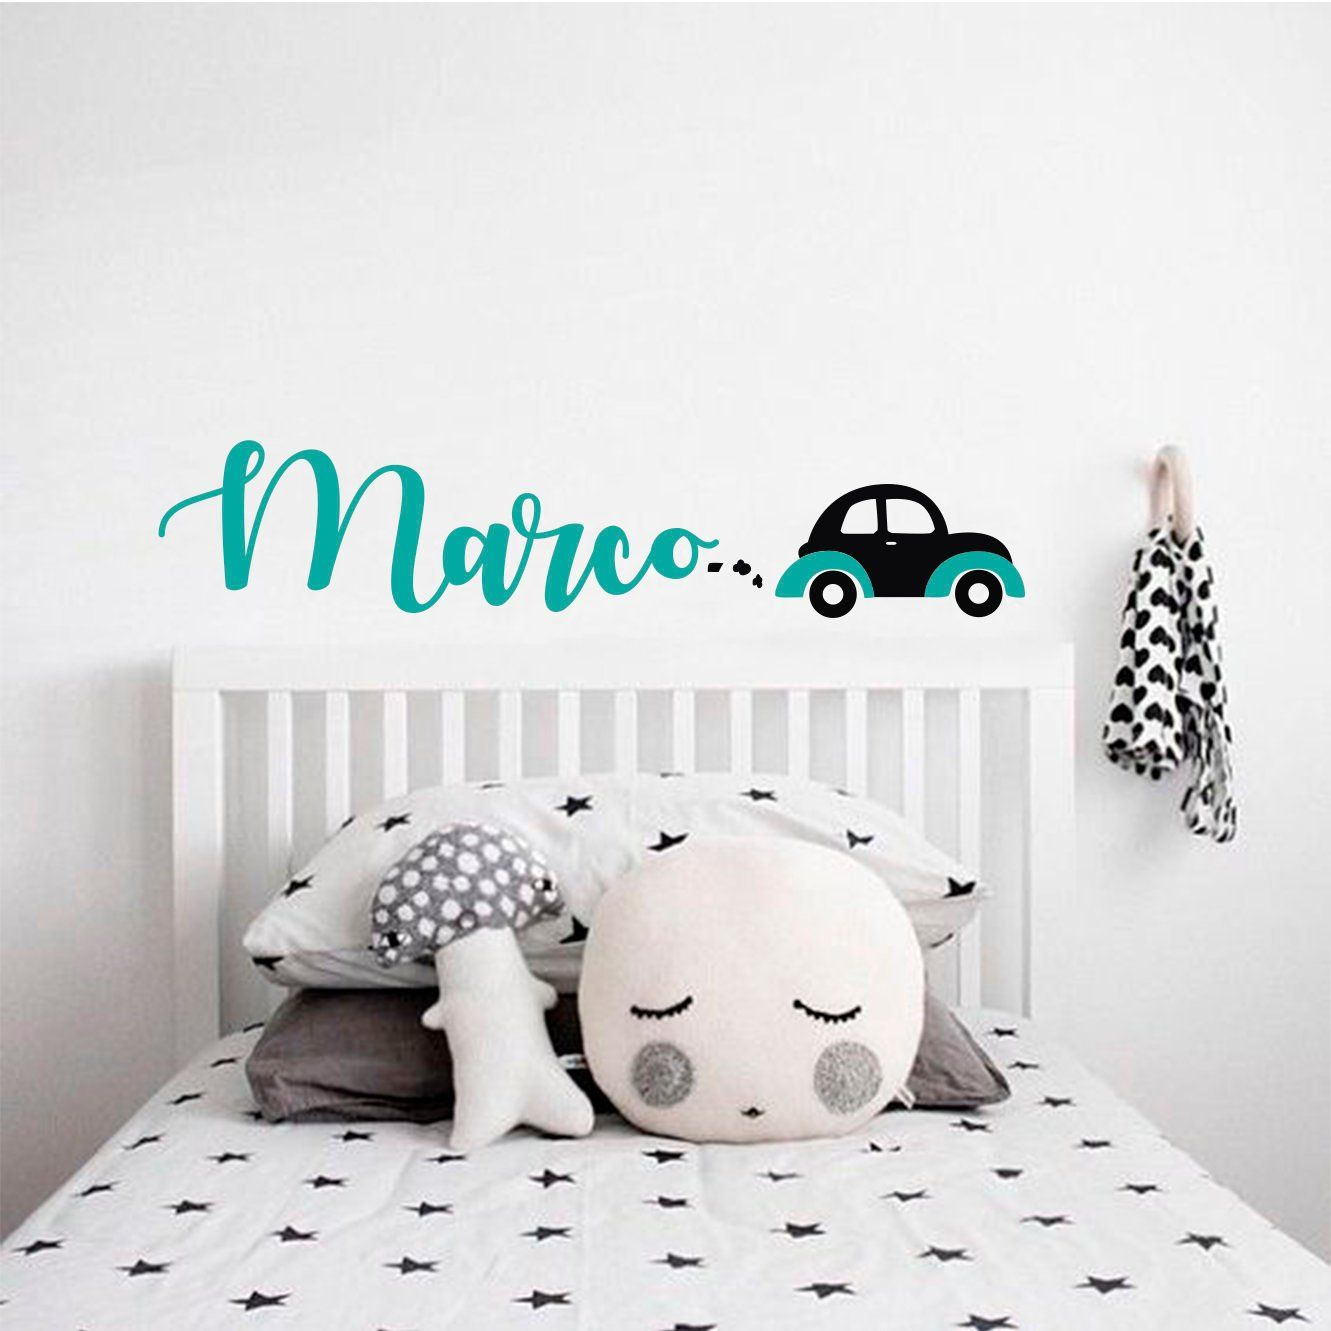 Personalized Name Wall Decal Car Wall Decal Boy Name Wall Decal Boys Room Decal Car Sticker Nursery Wall Decal Kids Custom Name Decal Boys Room Decals Kids Room Wall Decals Name